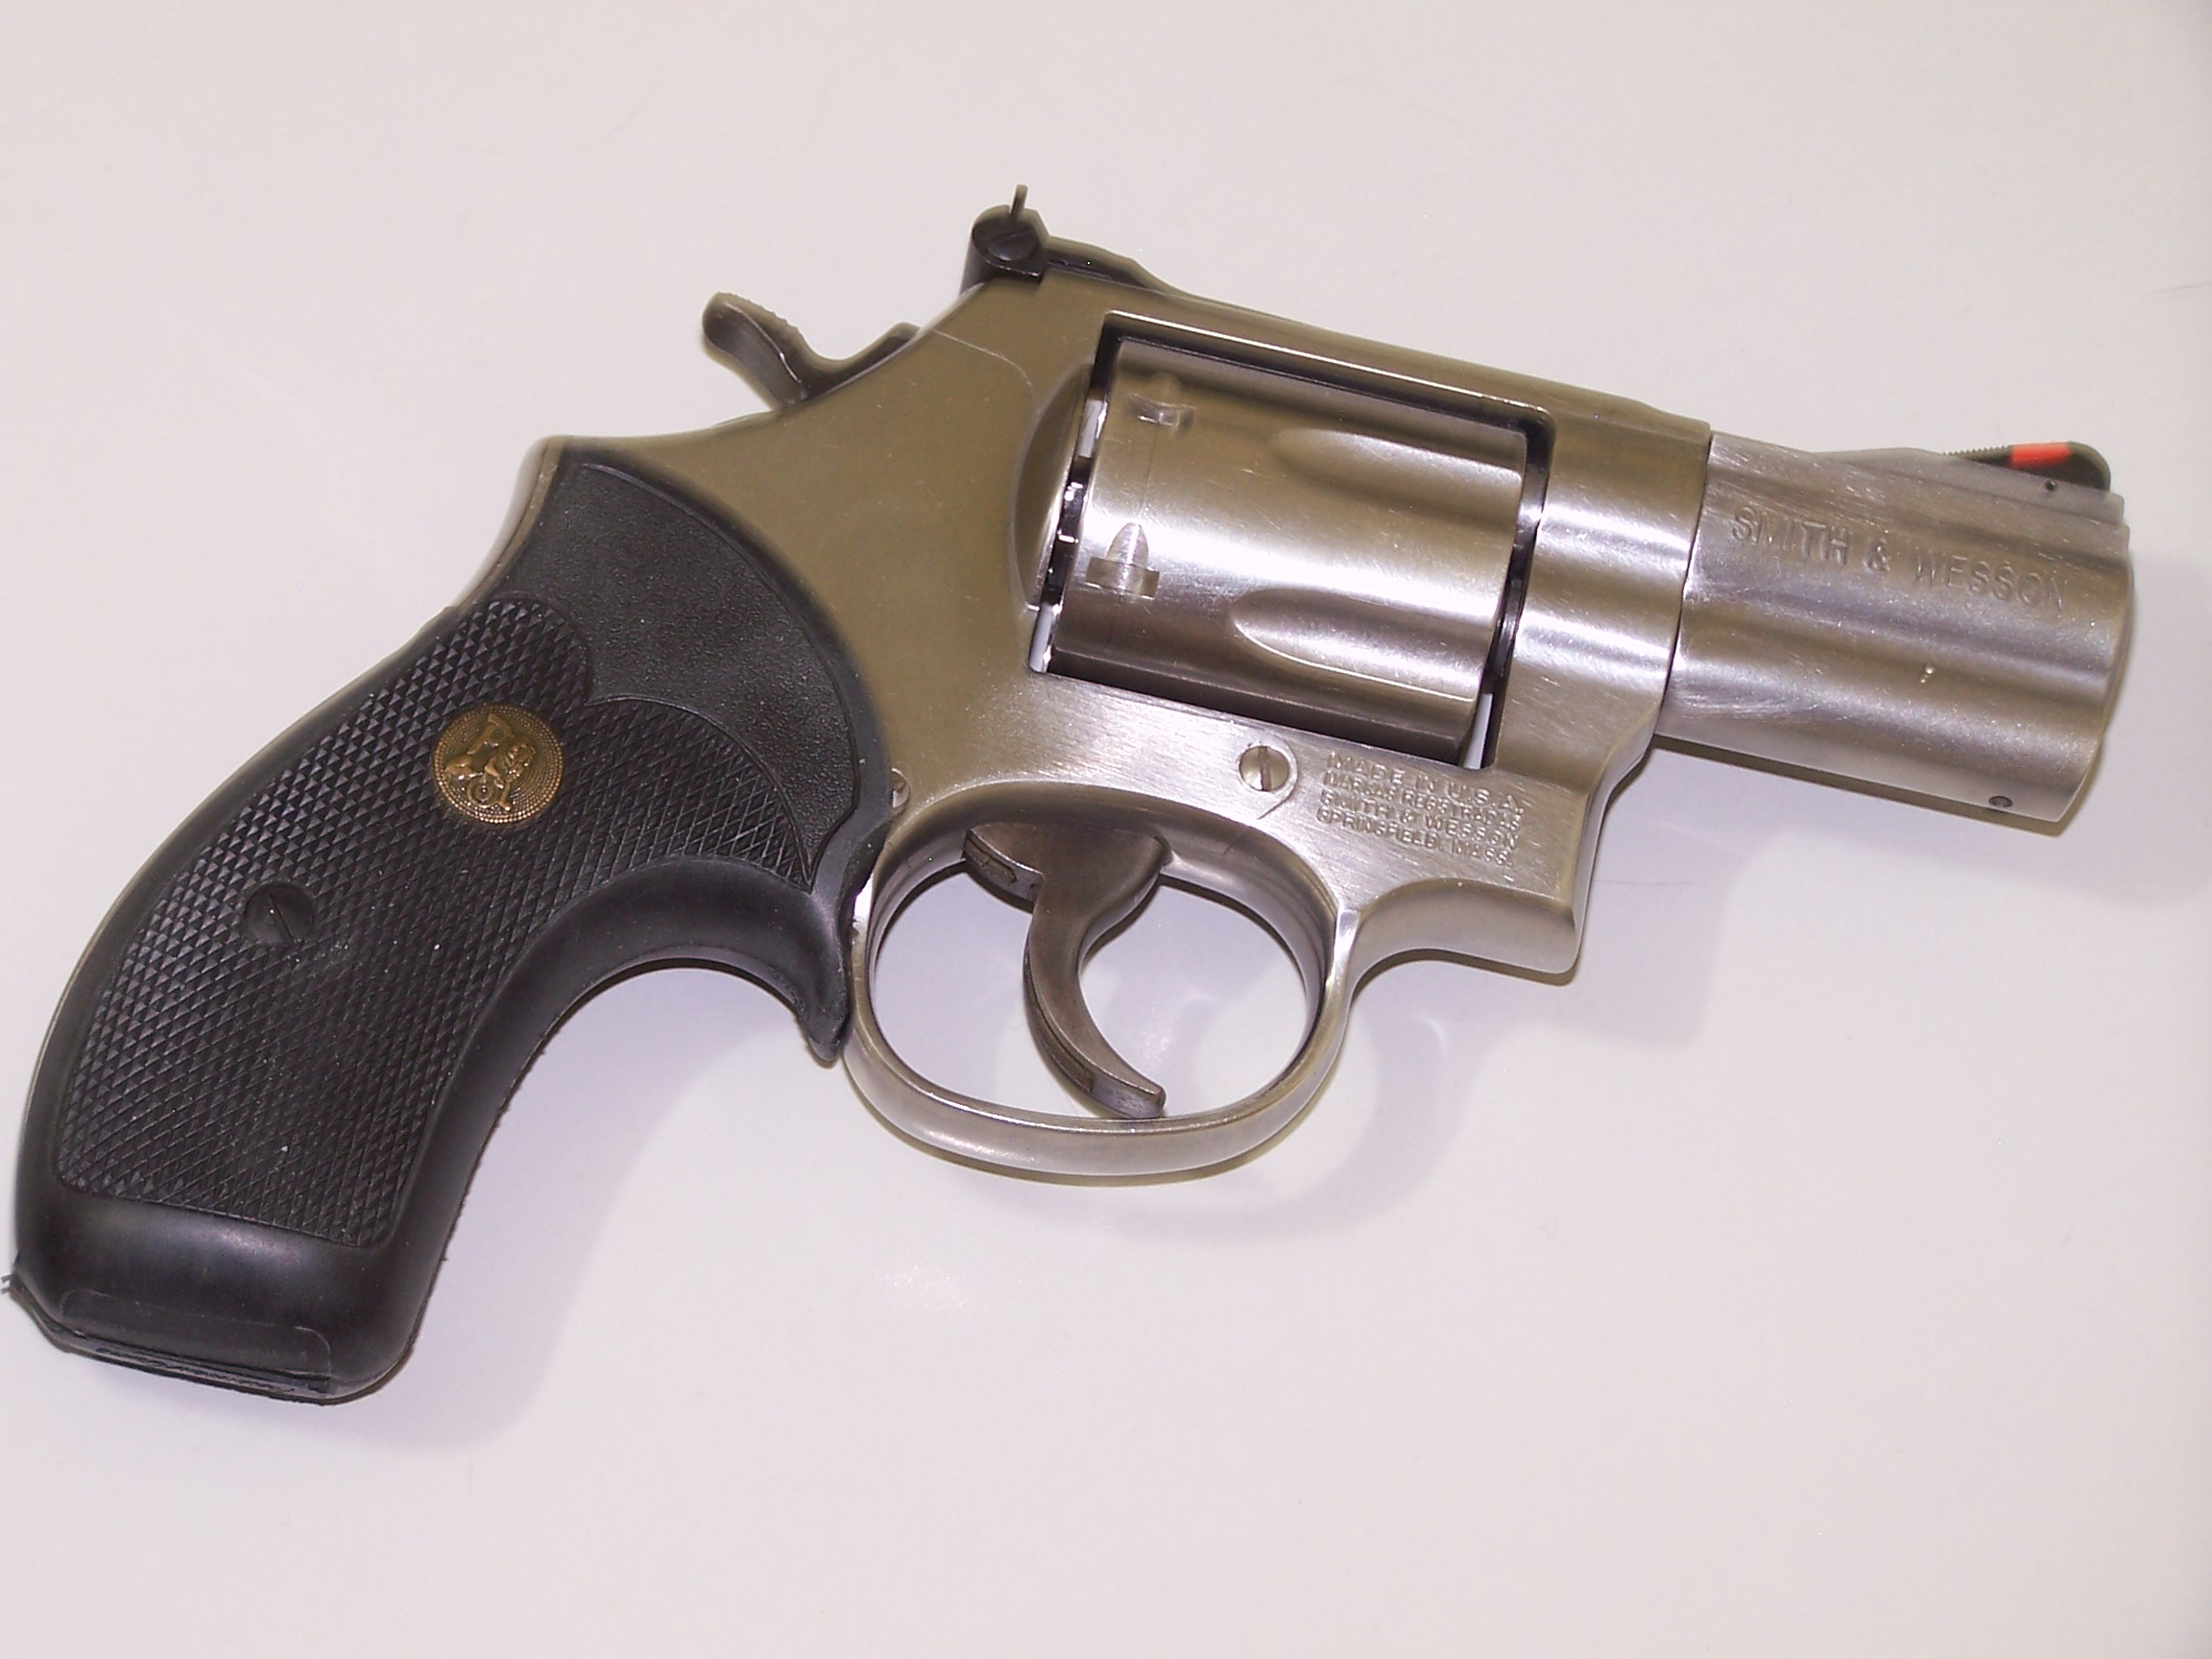 Revolvers -- 7 or 8rd, high performance, concealable-010.jpg